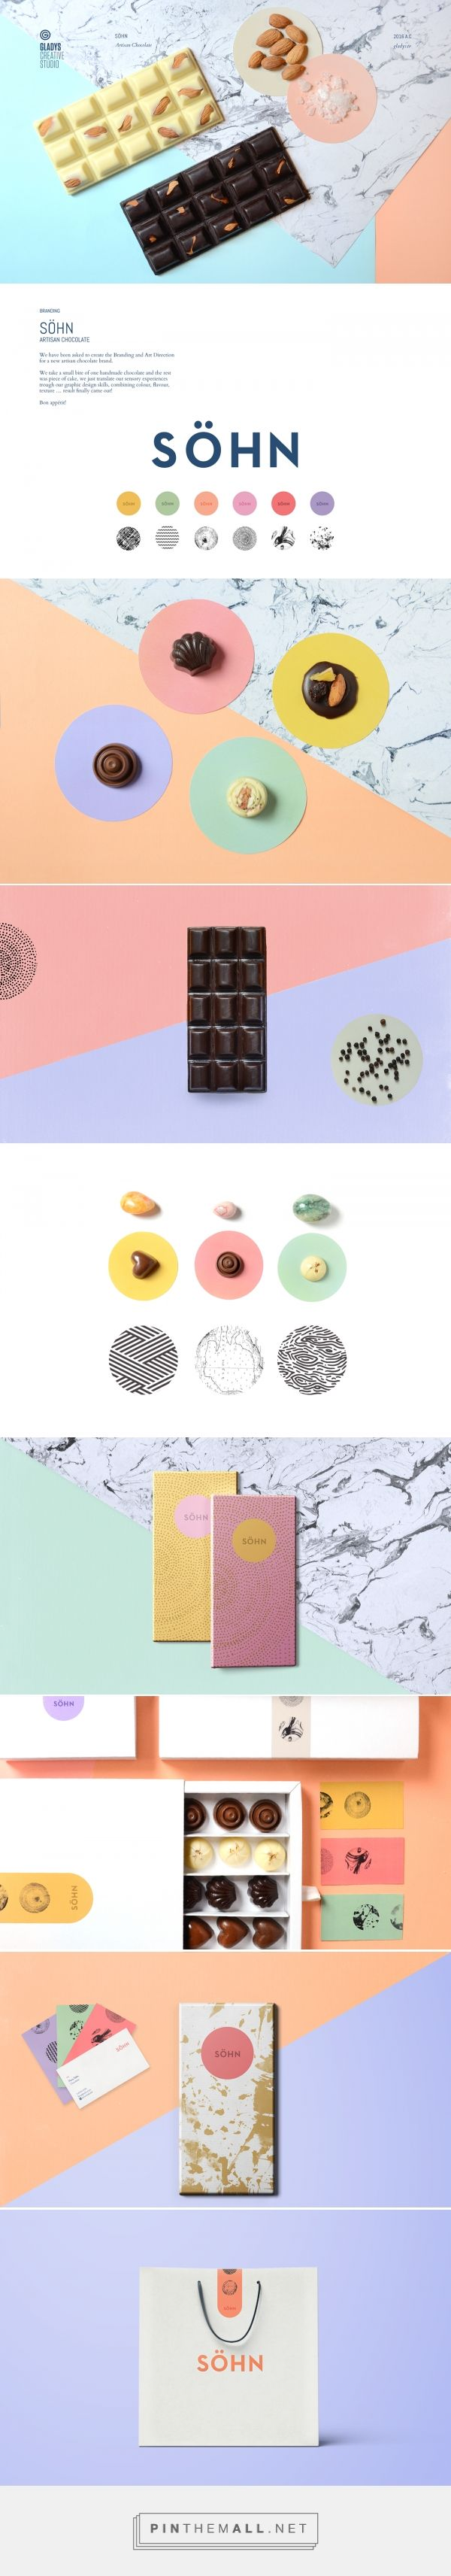 best Farfalle images on Pinterest Biscuits Donuts and Food design